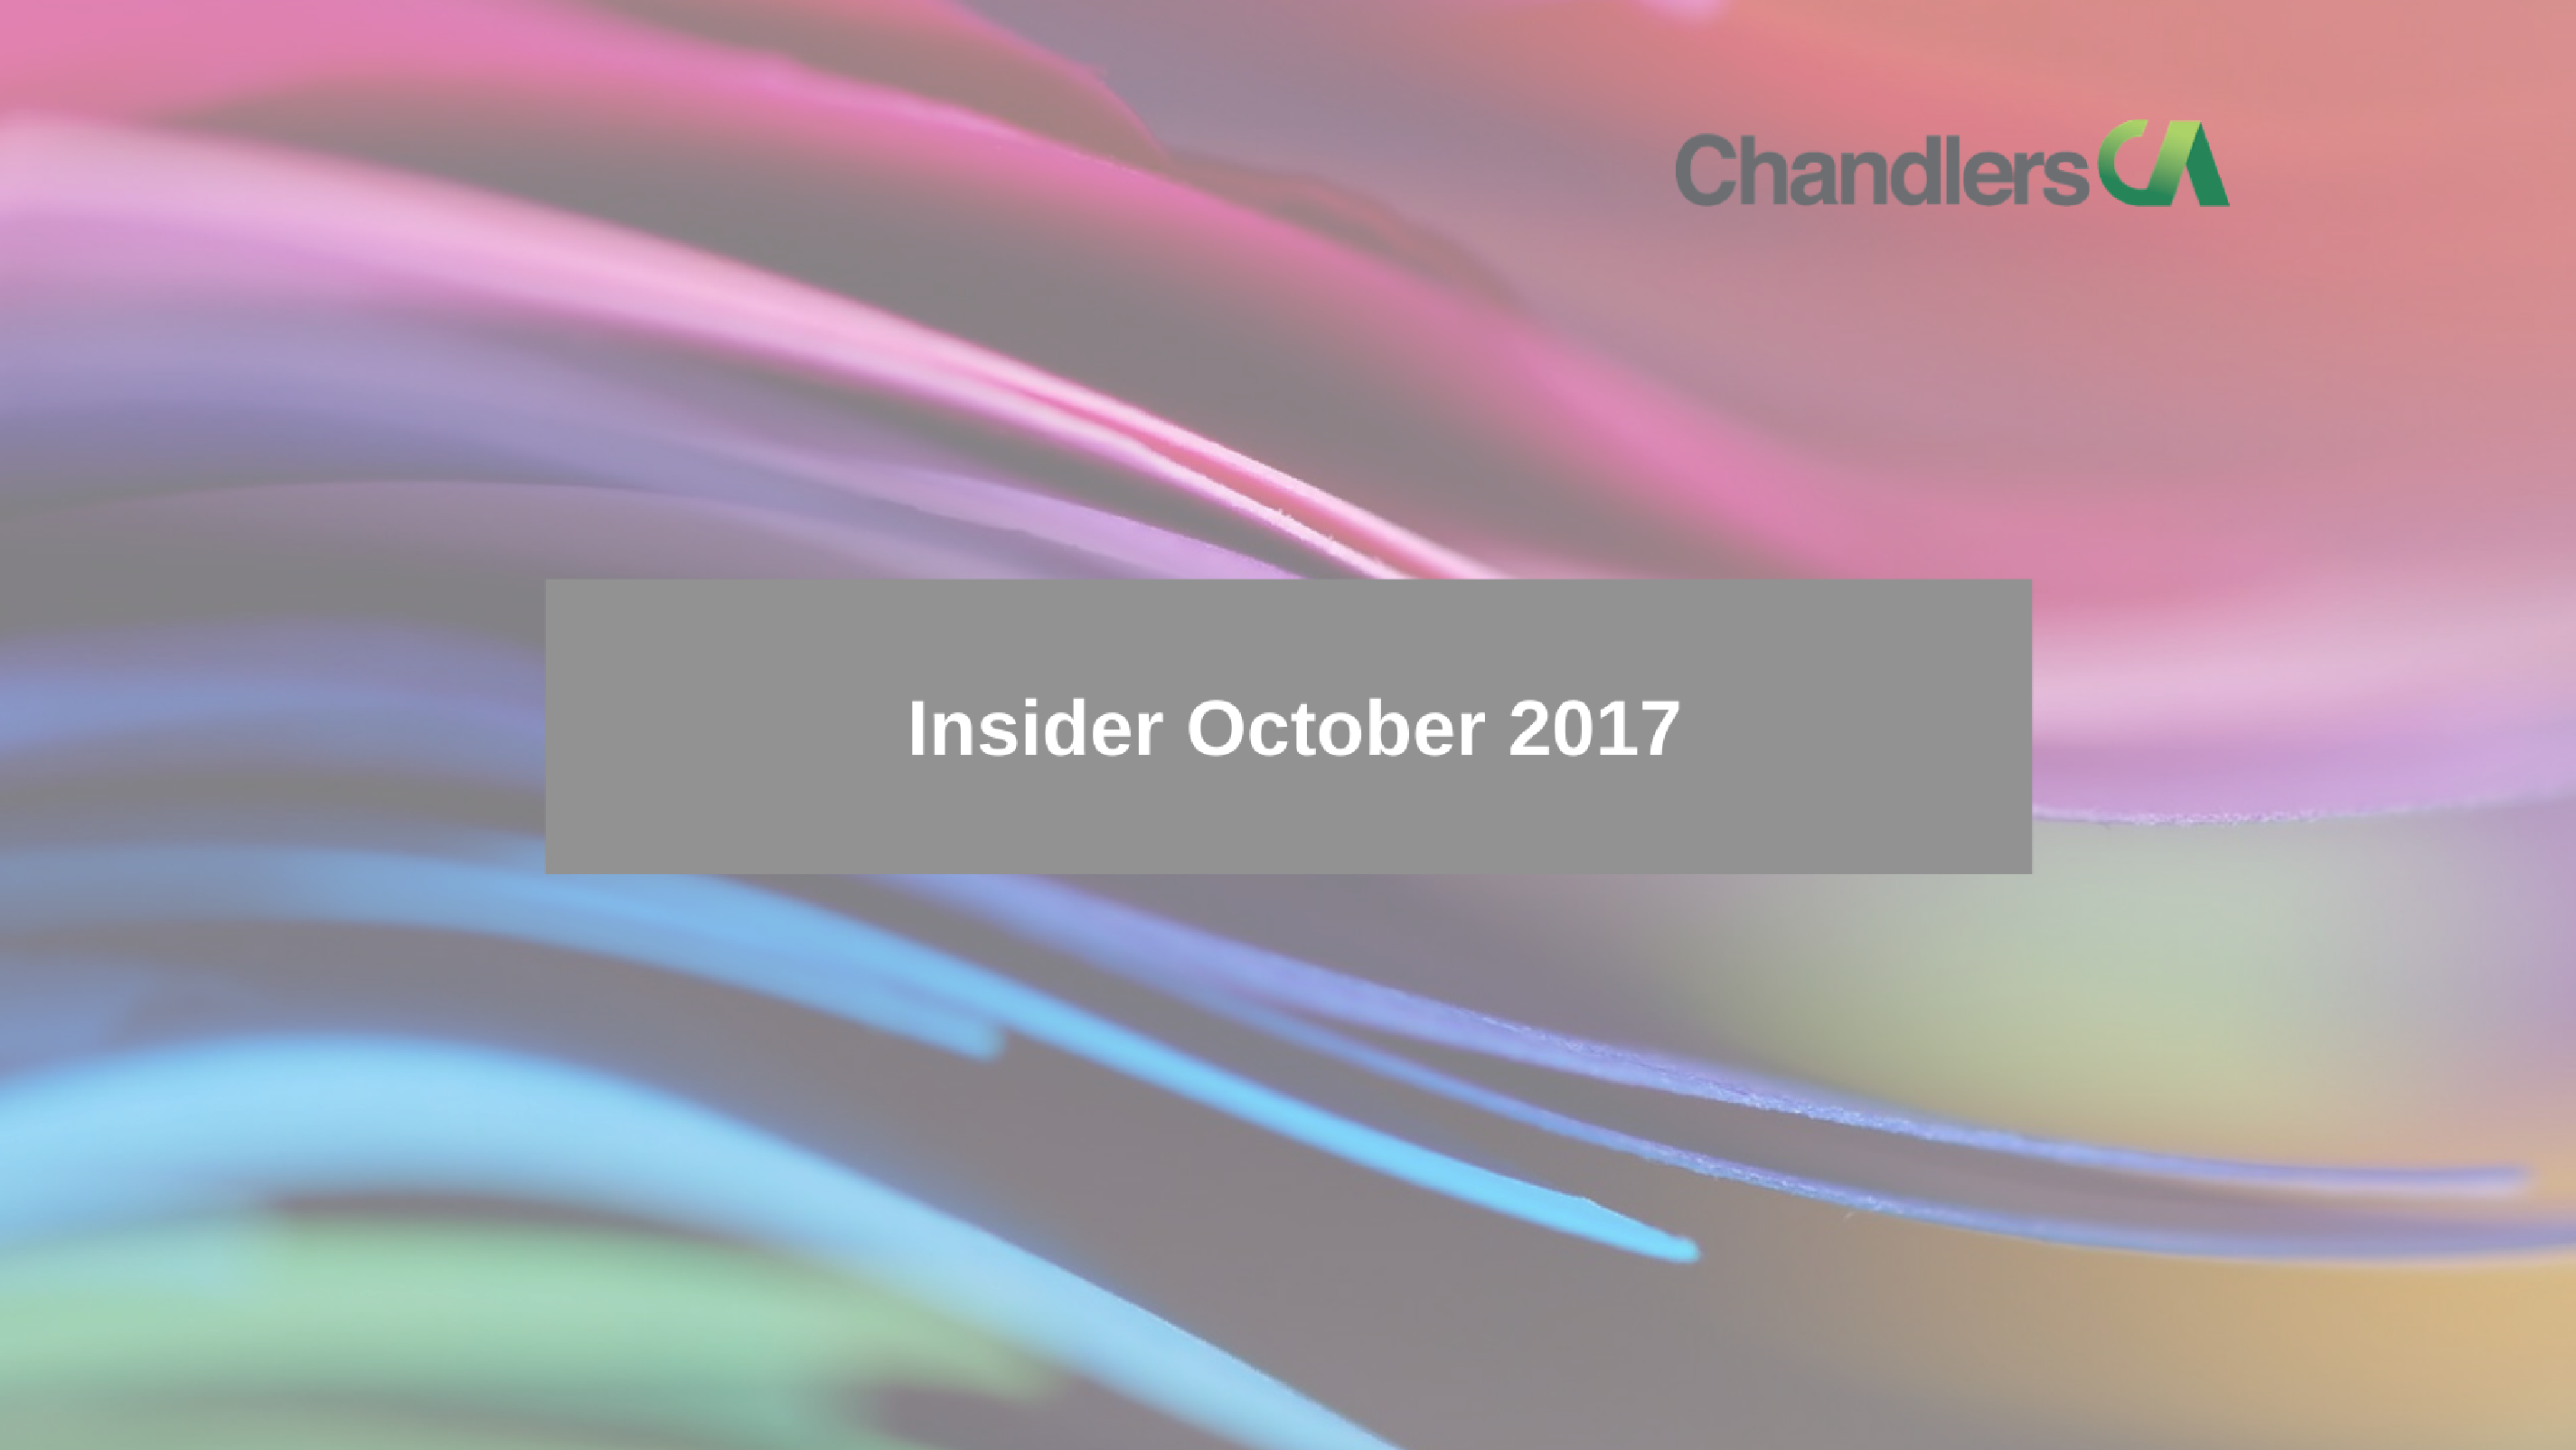 Tax Insider Guide for October 2017